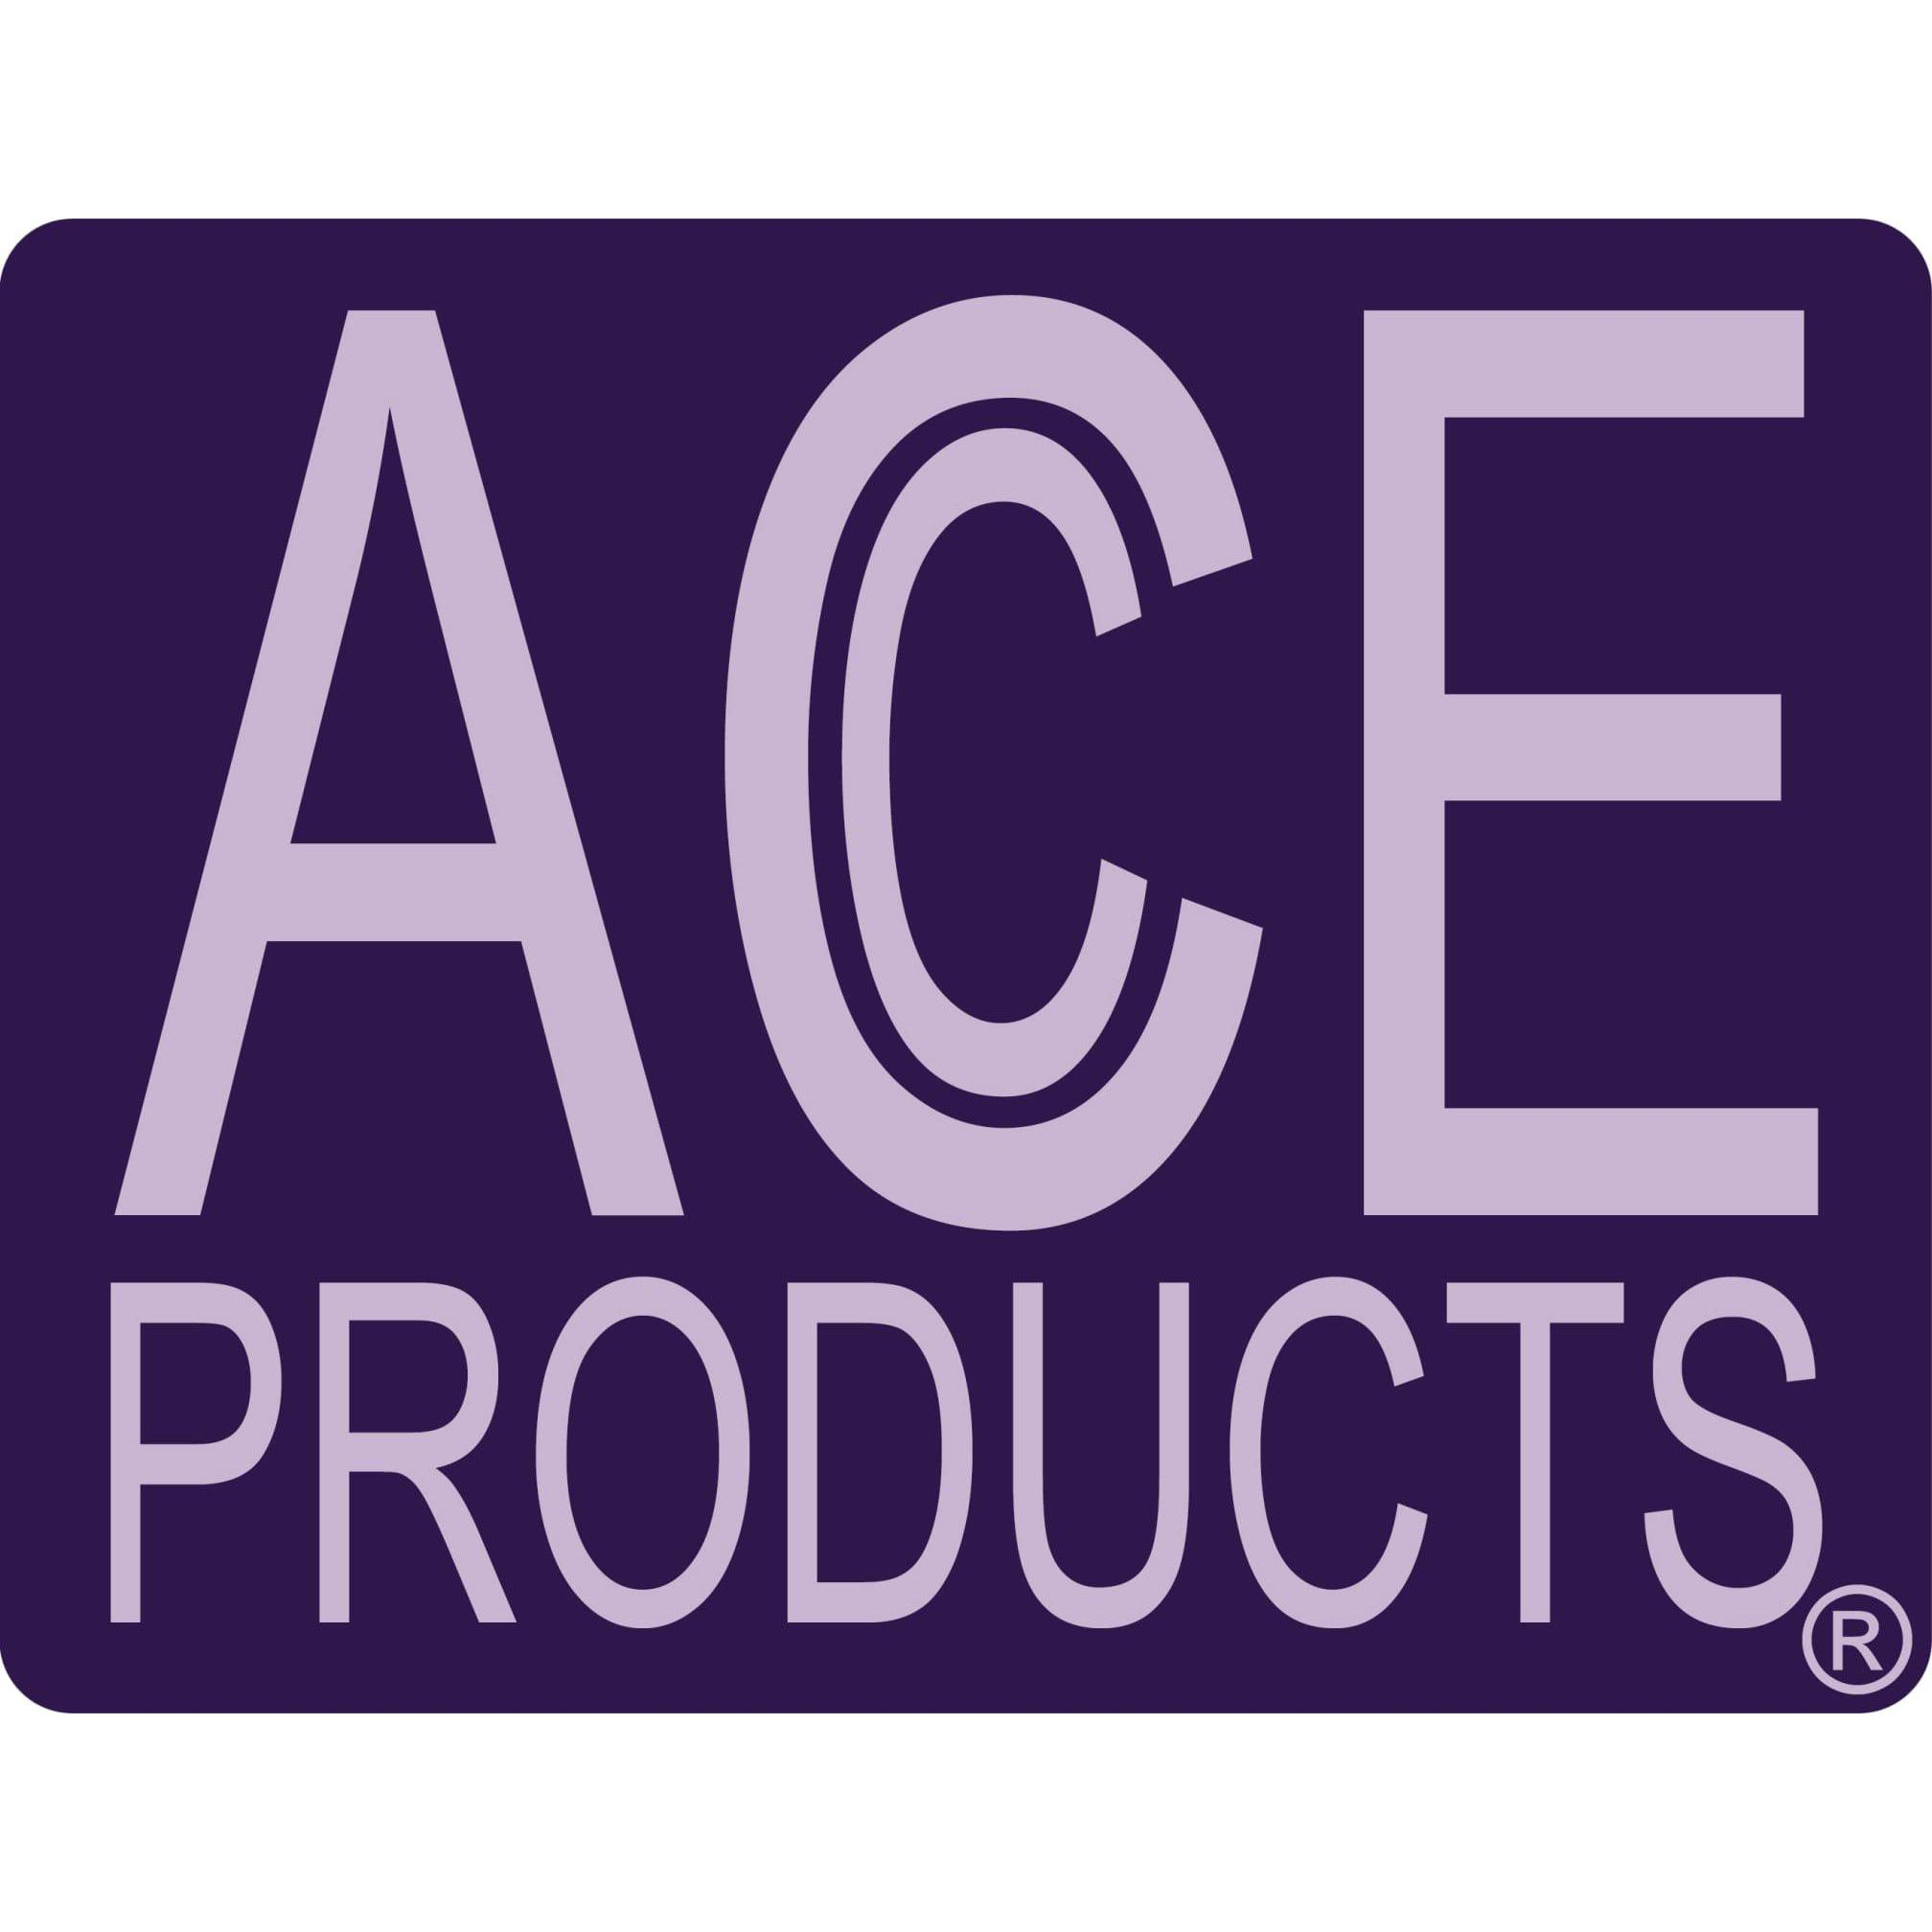 Acce Products - Thetford, Norfolk IP25 7FG - 07434 897941 | ShowMeLocal.com